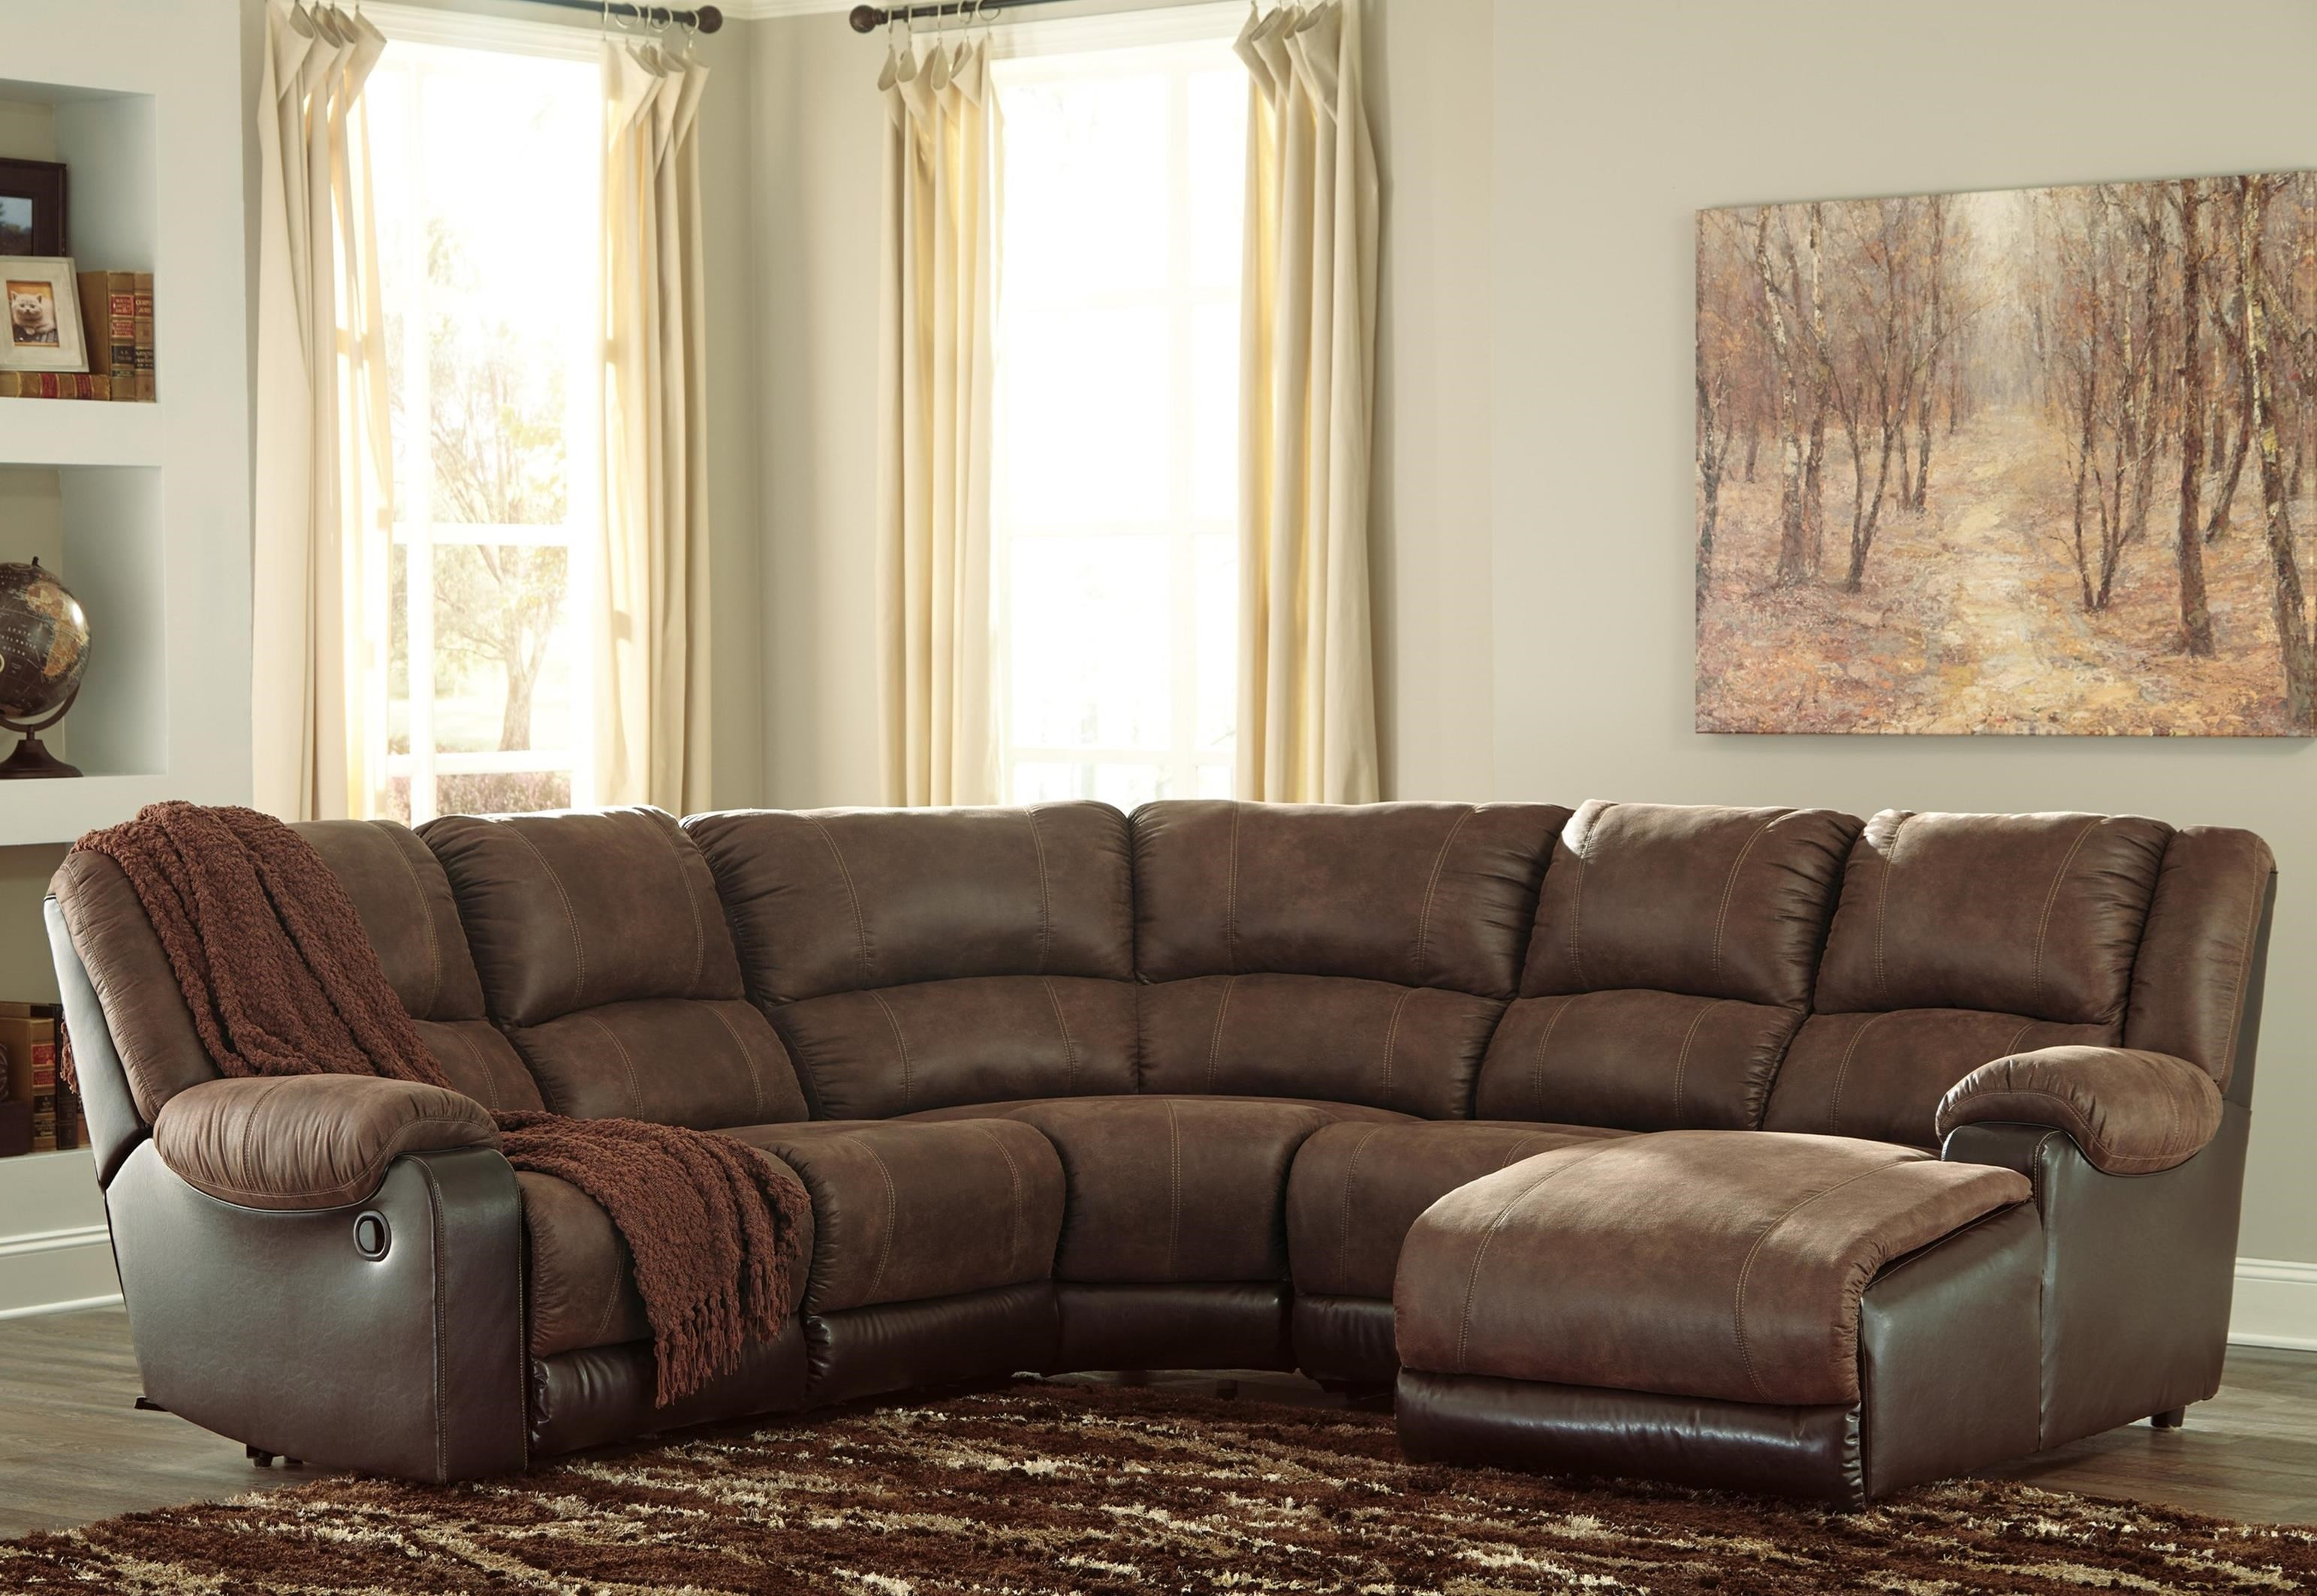 Ashley signature design nantahala faux leather reclining sectional with chaise dunk bright - Leather reclining sectional with chaise ...